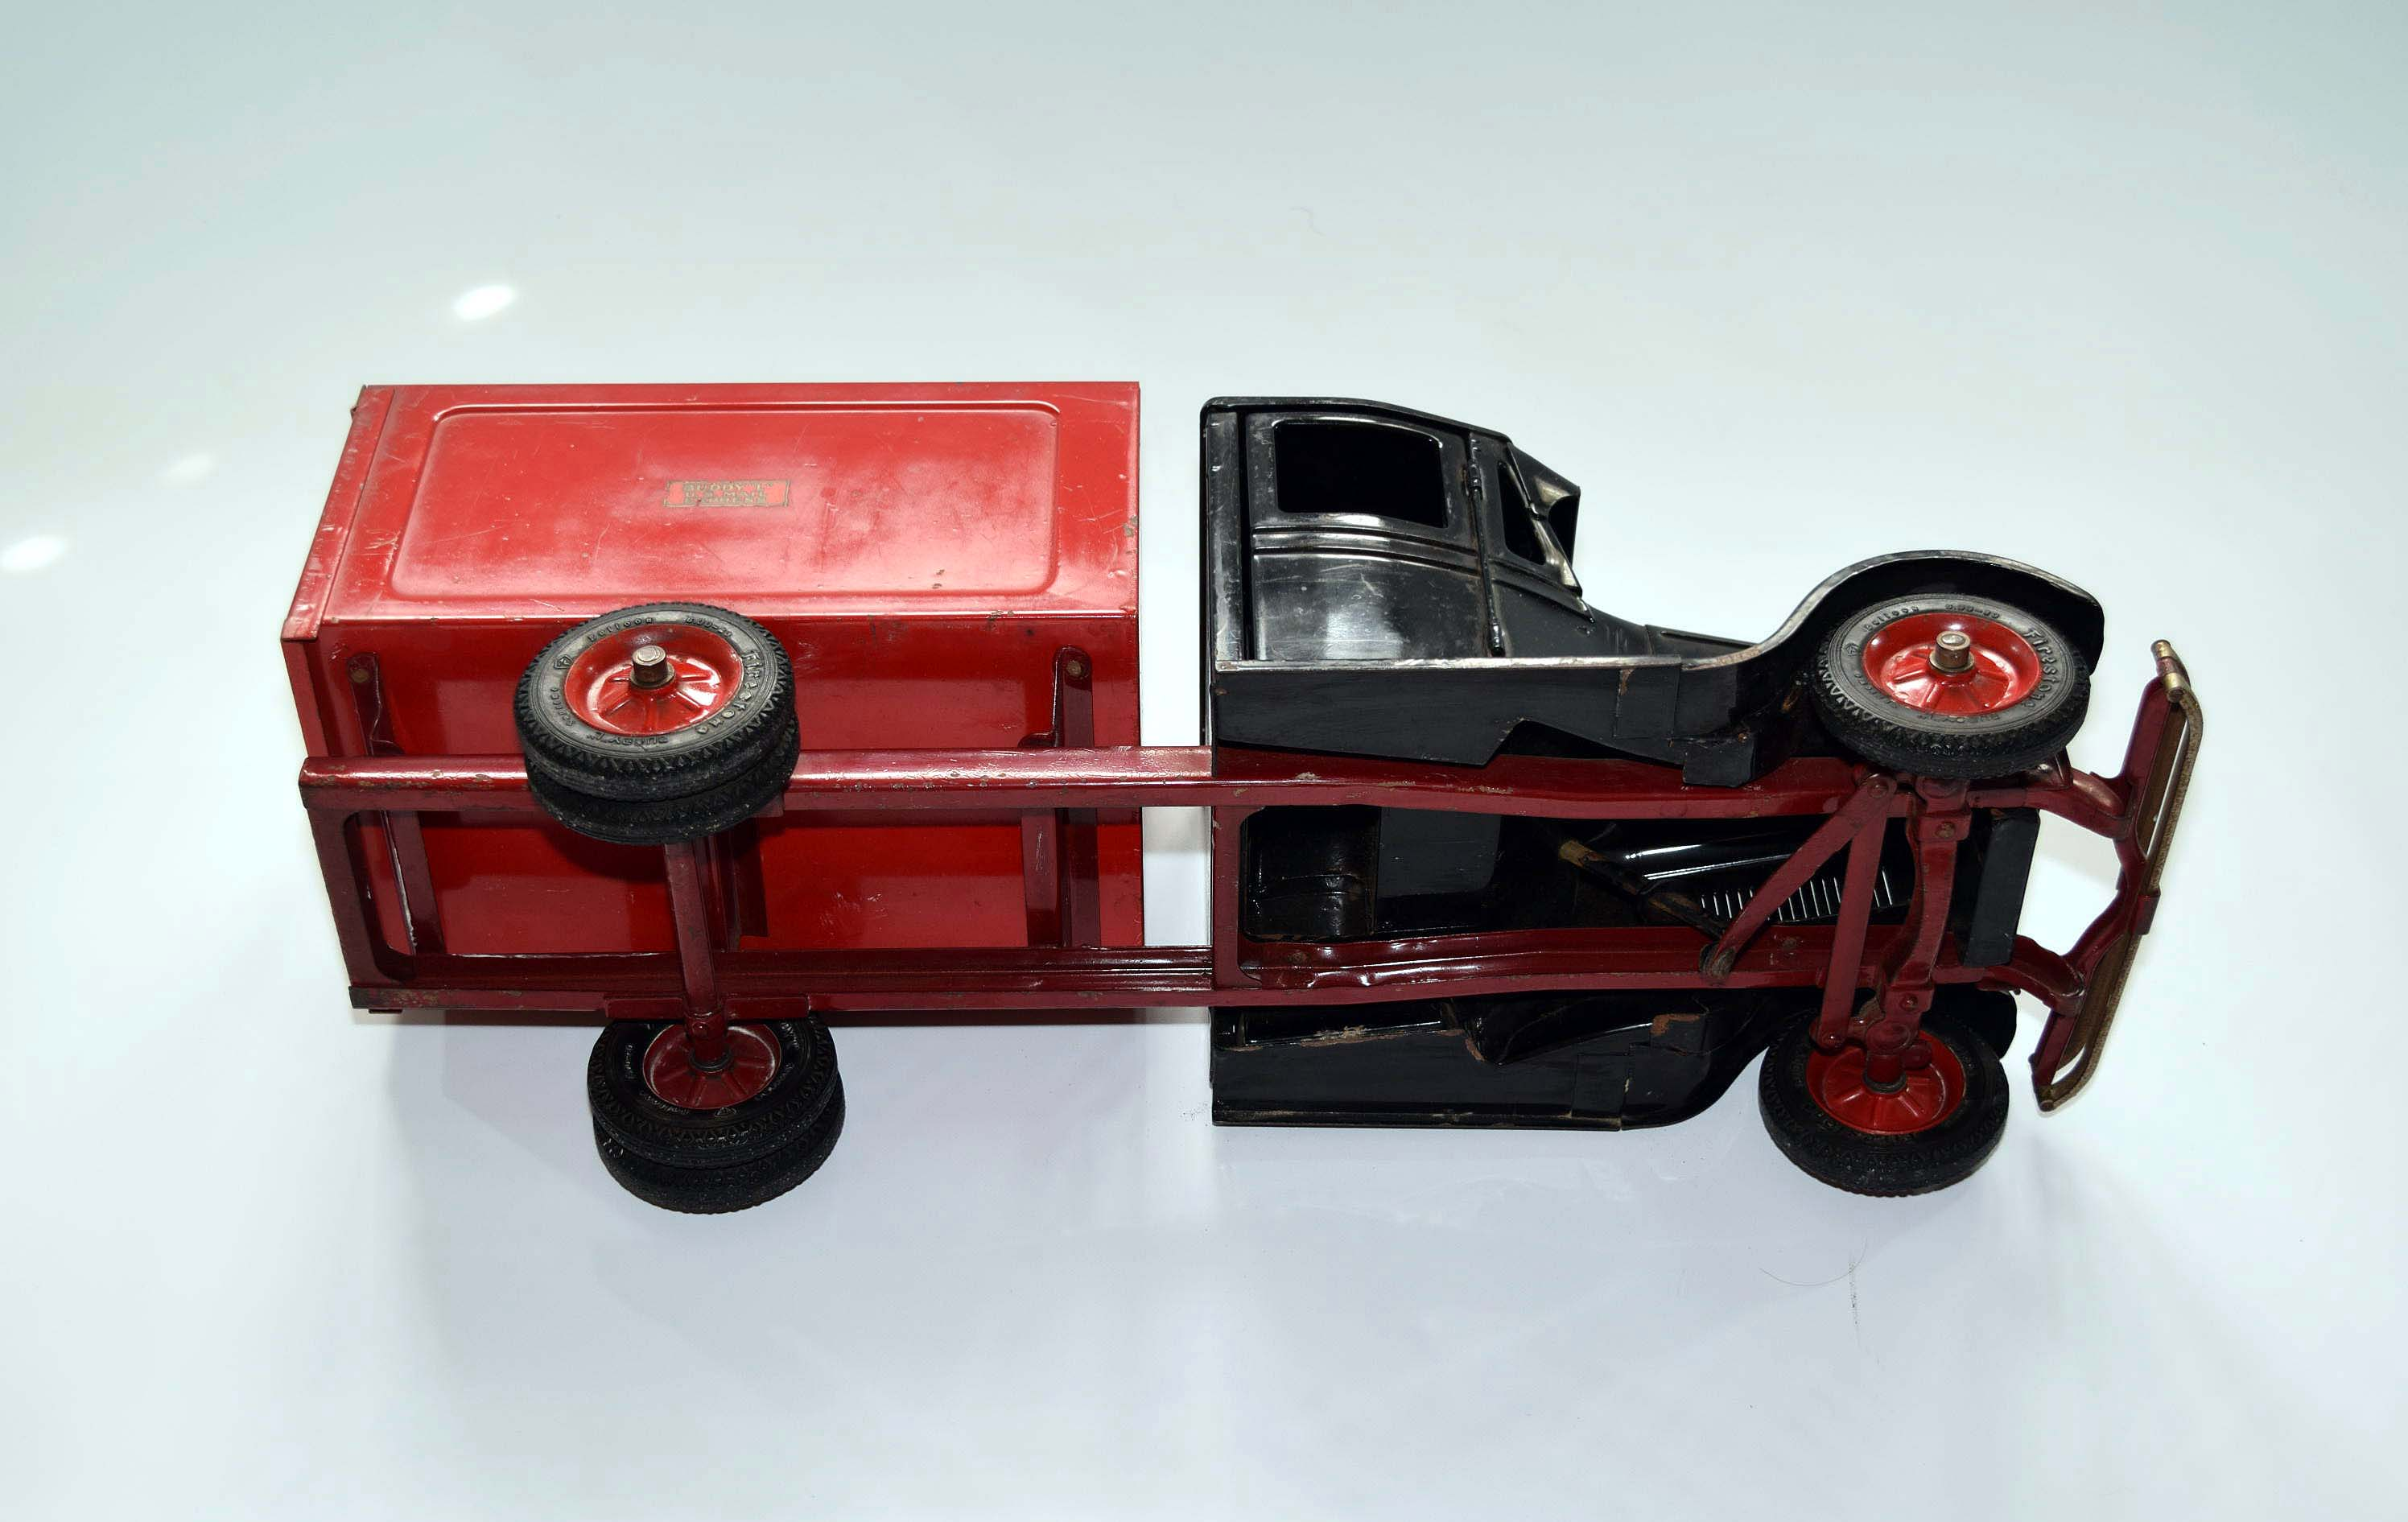 Buddy L Jr U S Mail Truck For Sale - Museums for sale in us